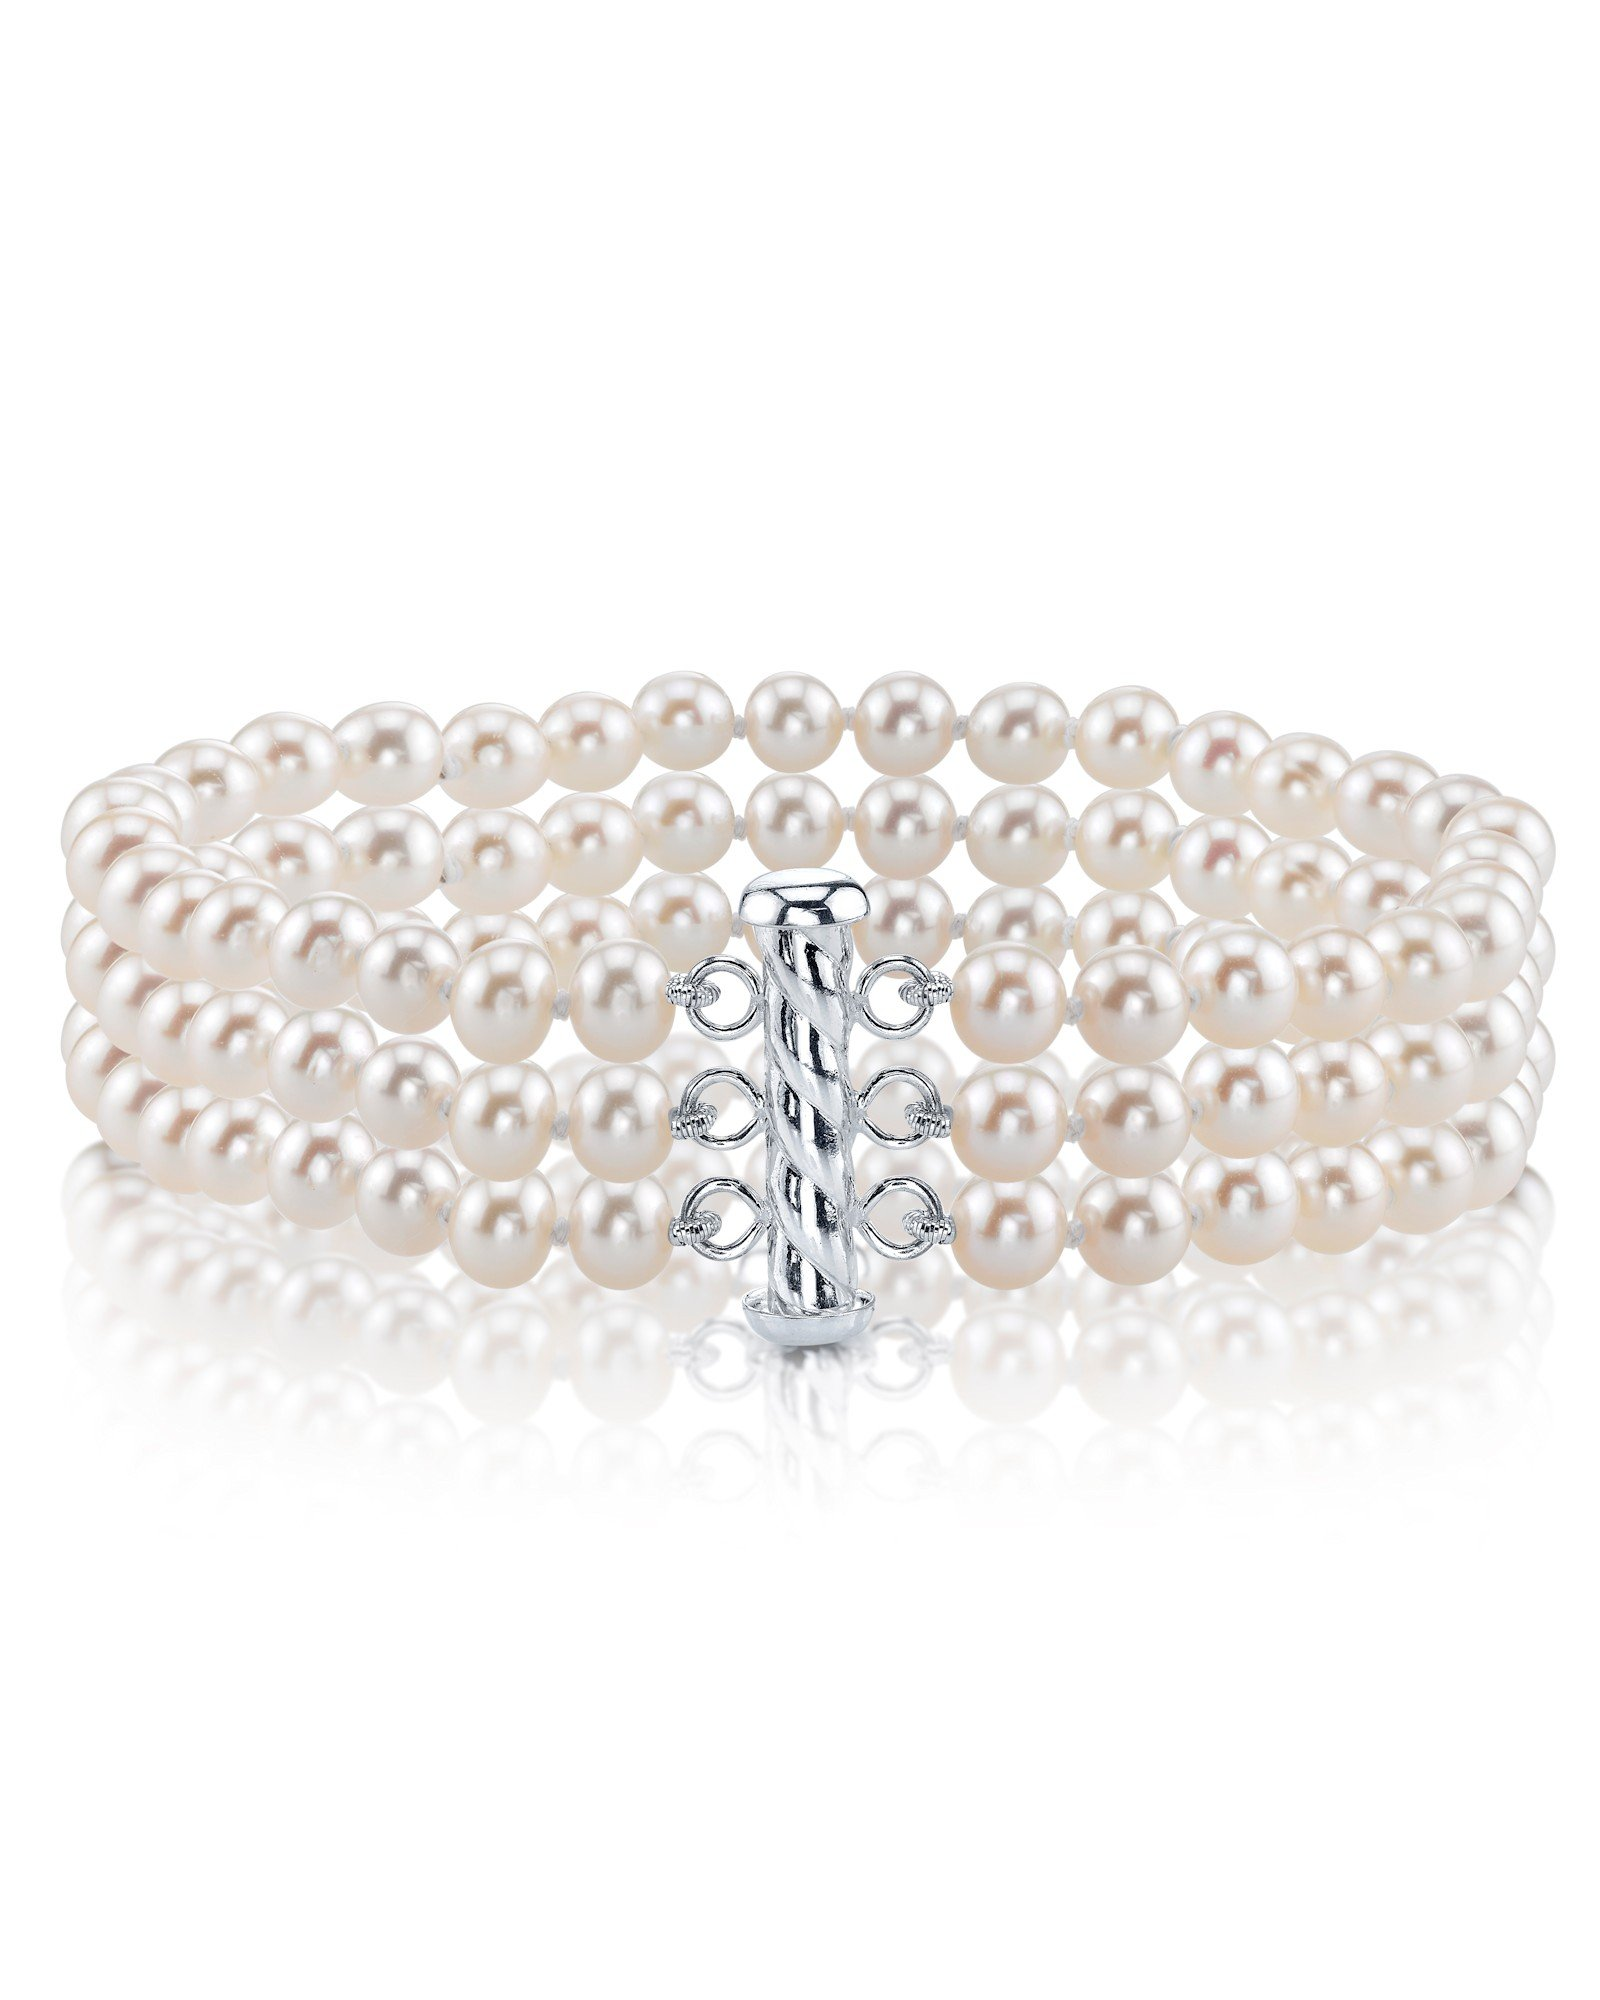 Sterling Silver Triple White Freshwater Cultured Pearl Bracelet - AAAA Quality